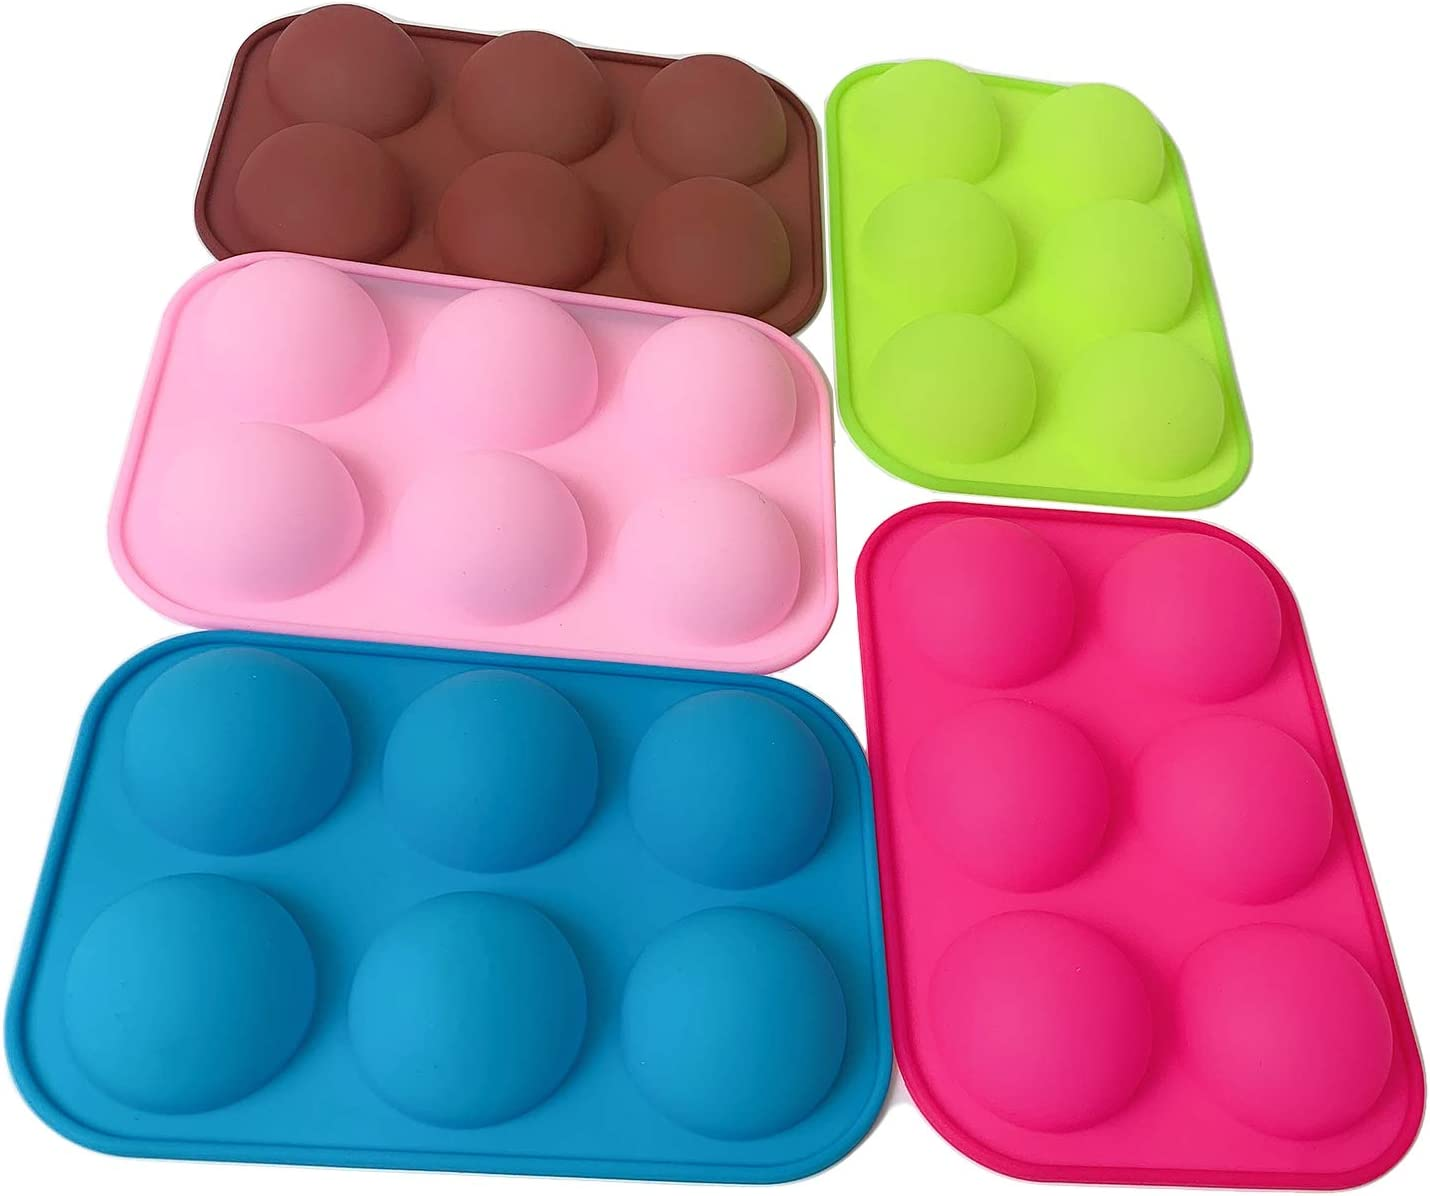 6 Holes Silicone Cake Mold, Chocolate Bomb Mold, Decor Accessories Candy Bakeware Kitchen Tools, Non Stick Round Shape Half Sphere Mold, BPA Free Cupcake Baking Pan(5Pcs)